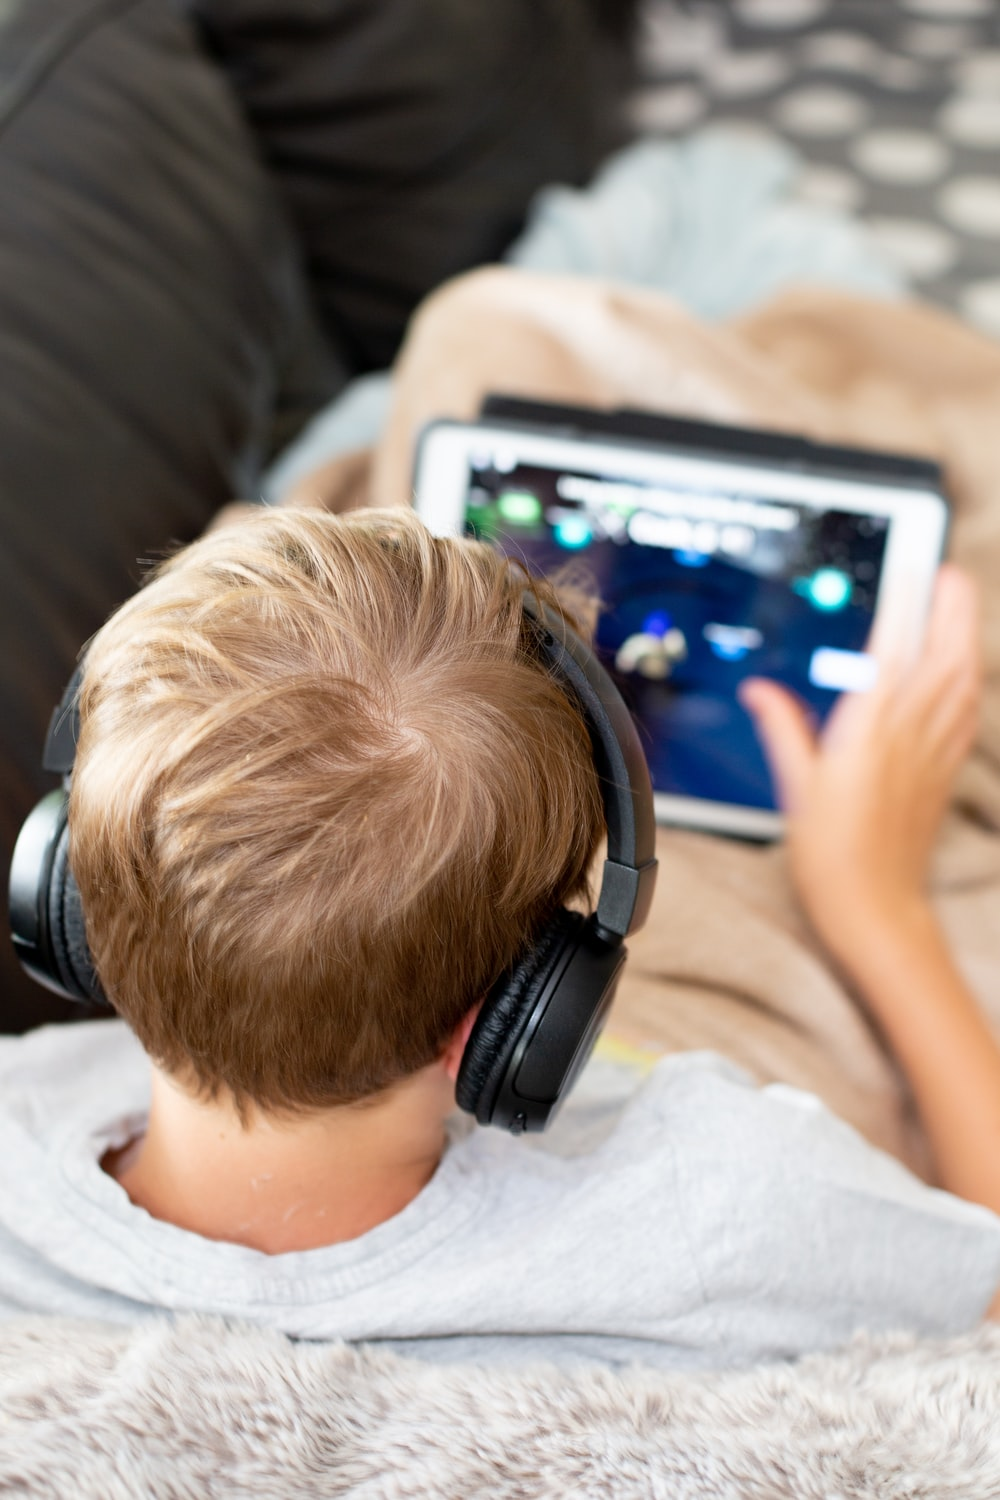 boy in white shirt using white tablet computer